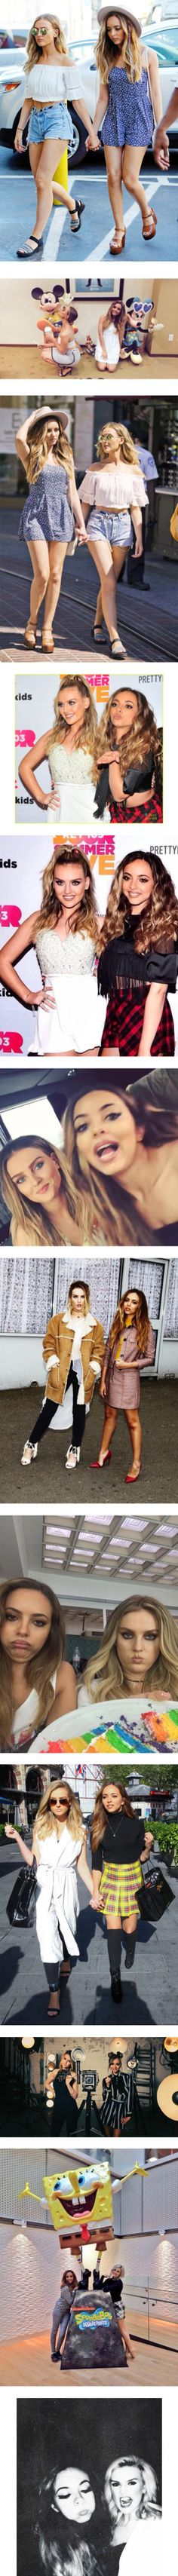 Jerrie by croonessii on Polyvore featuring little mix, people, photo, perrie, jade, jerrie, perrie edwards, jade thirlwall, fotos and mens